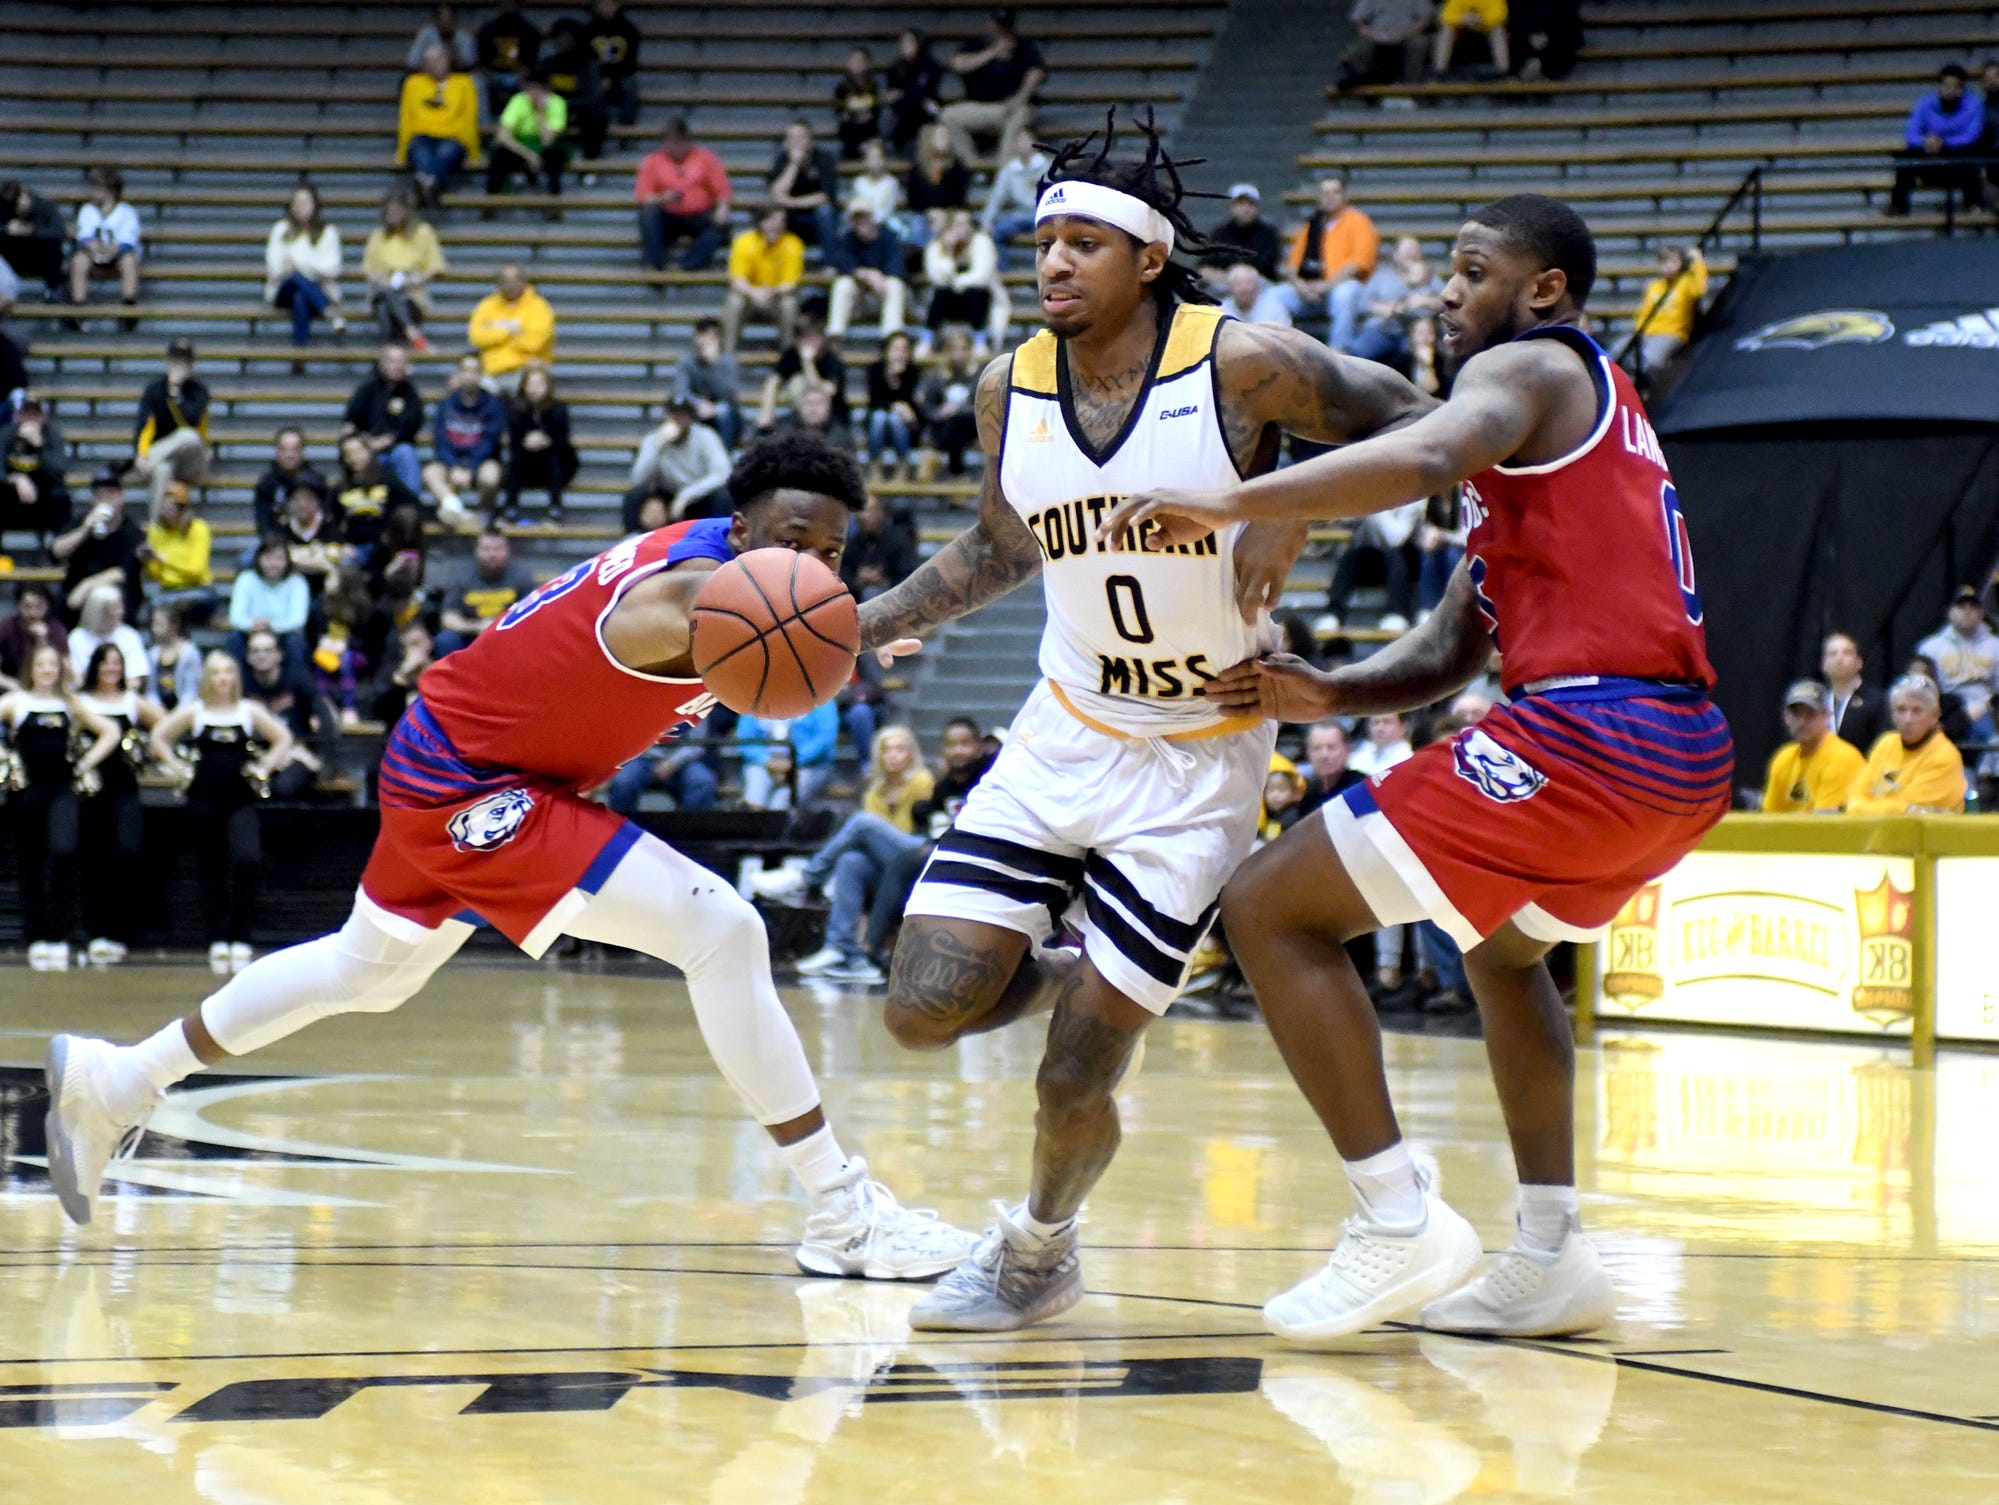 Southern Miss guard Dominic Magee fights off defenders in a game against Louisiana Tech in Reed Green Coliseum on Saturday, February 9, 2019.